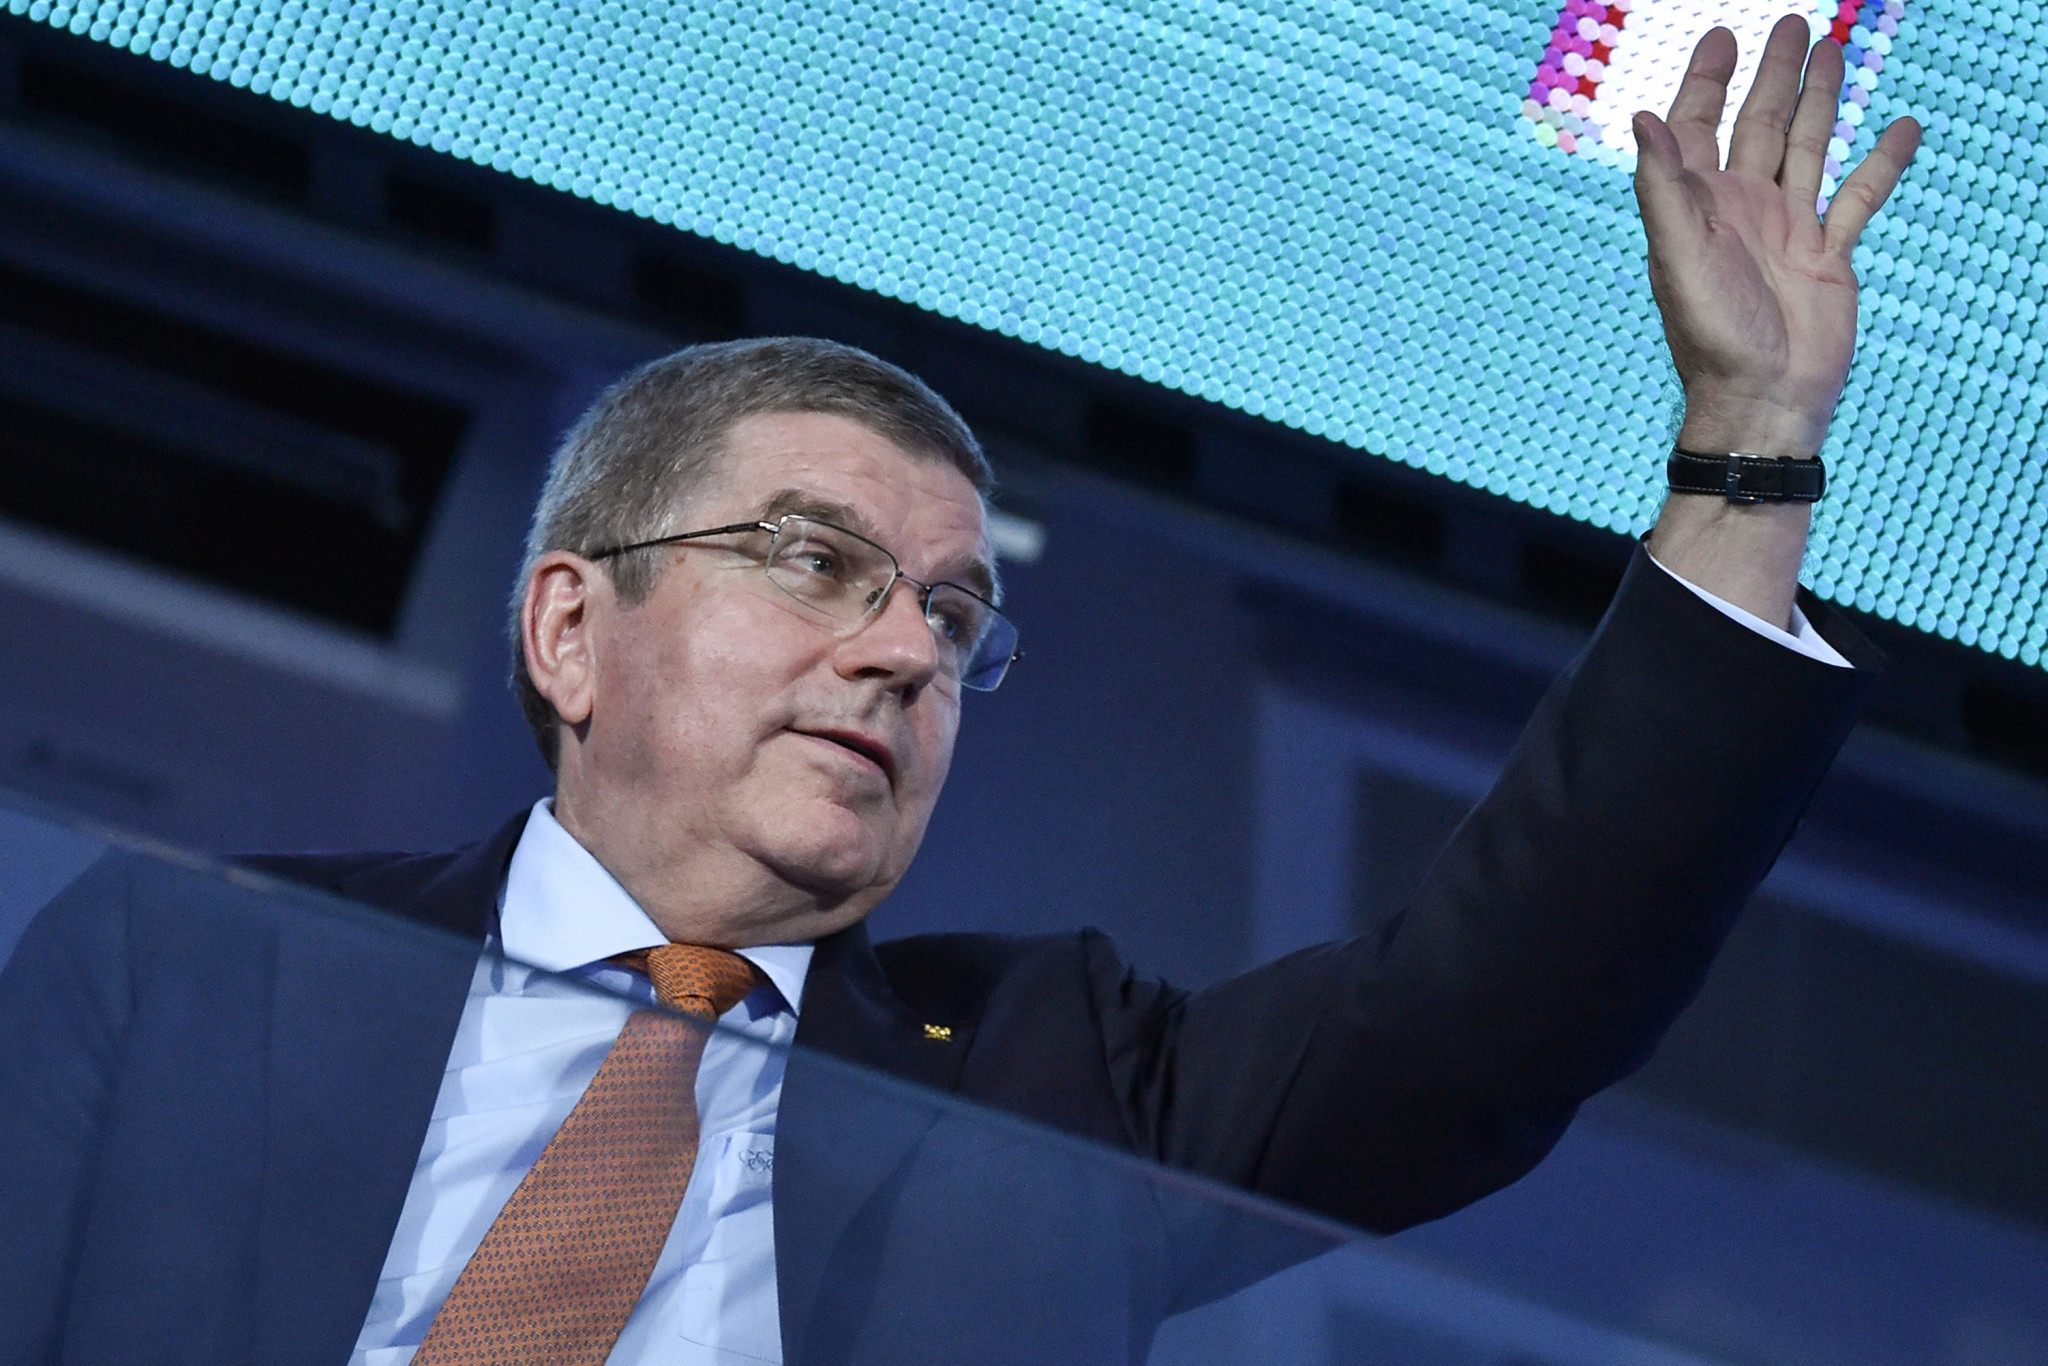 The IOC's President, Thomas Bach, attended Sunday's European Games Closing Ceremony in Minsk ©Getty Images